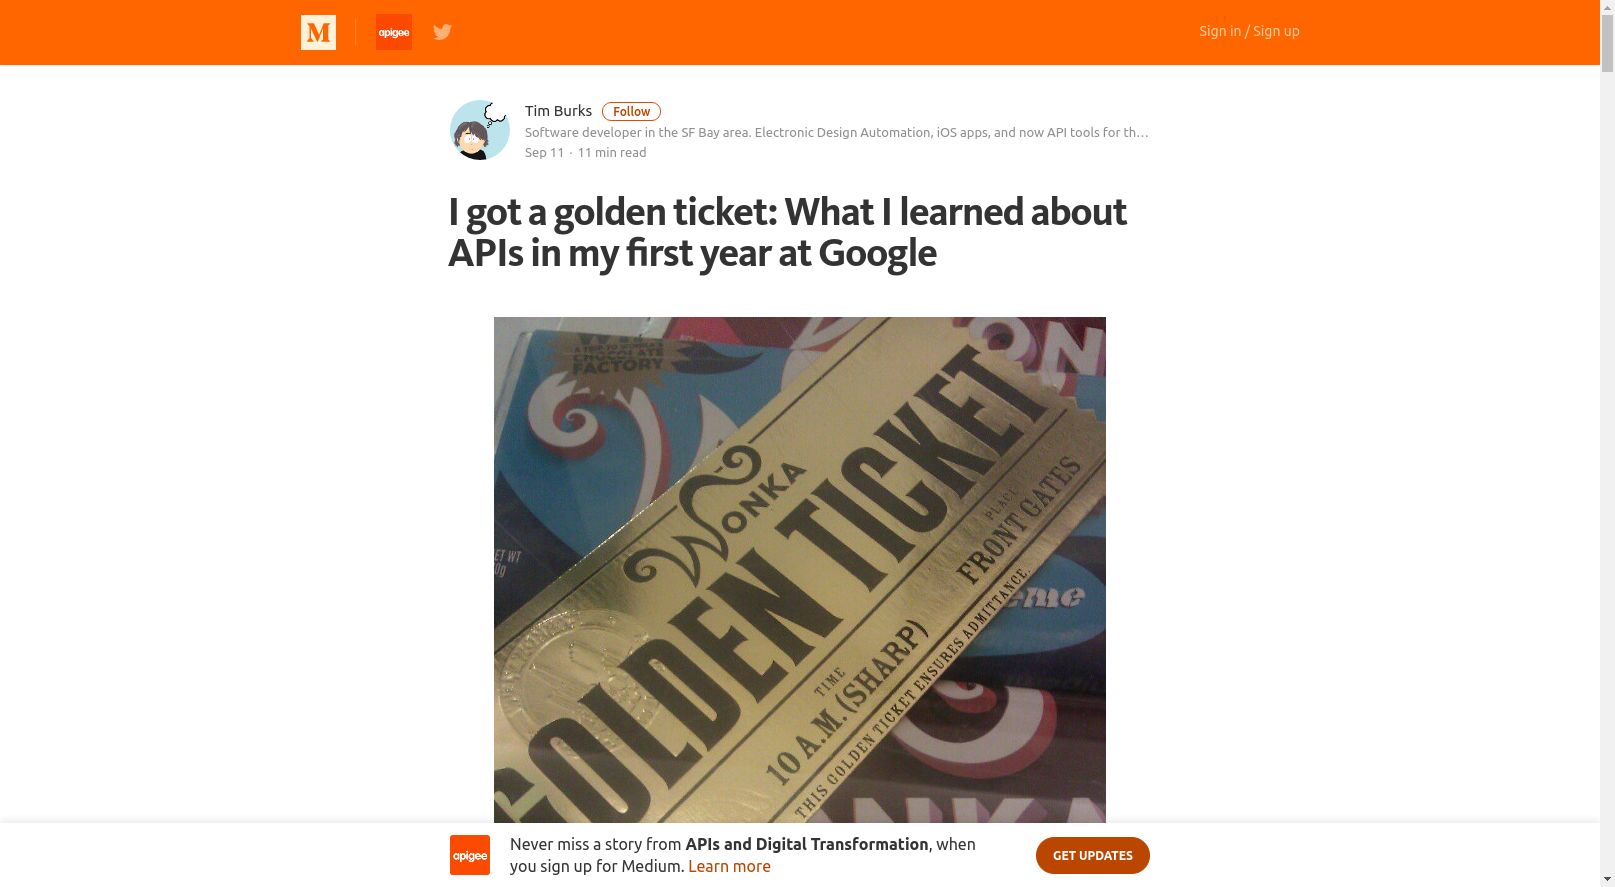 I got a golden ticket: What I learned about APIs in my first year at Google